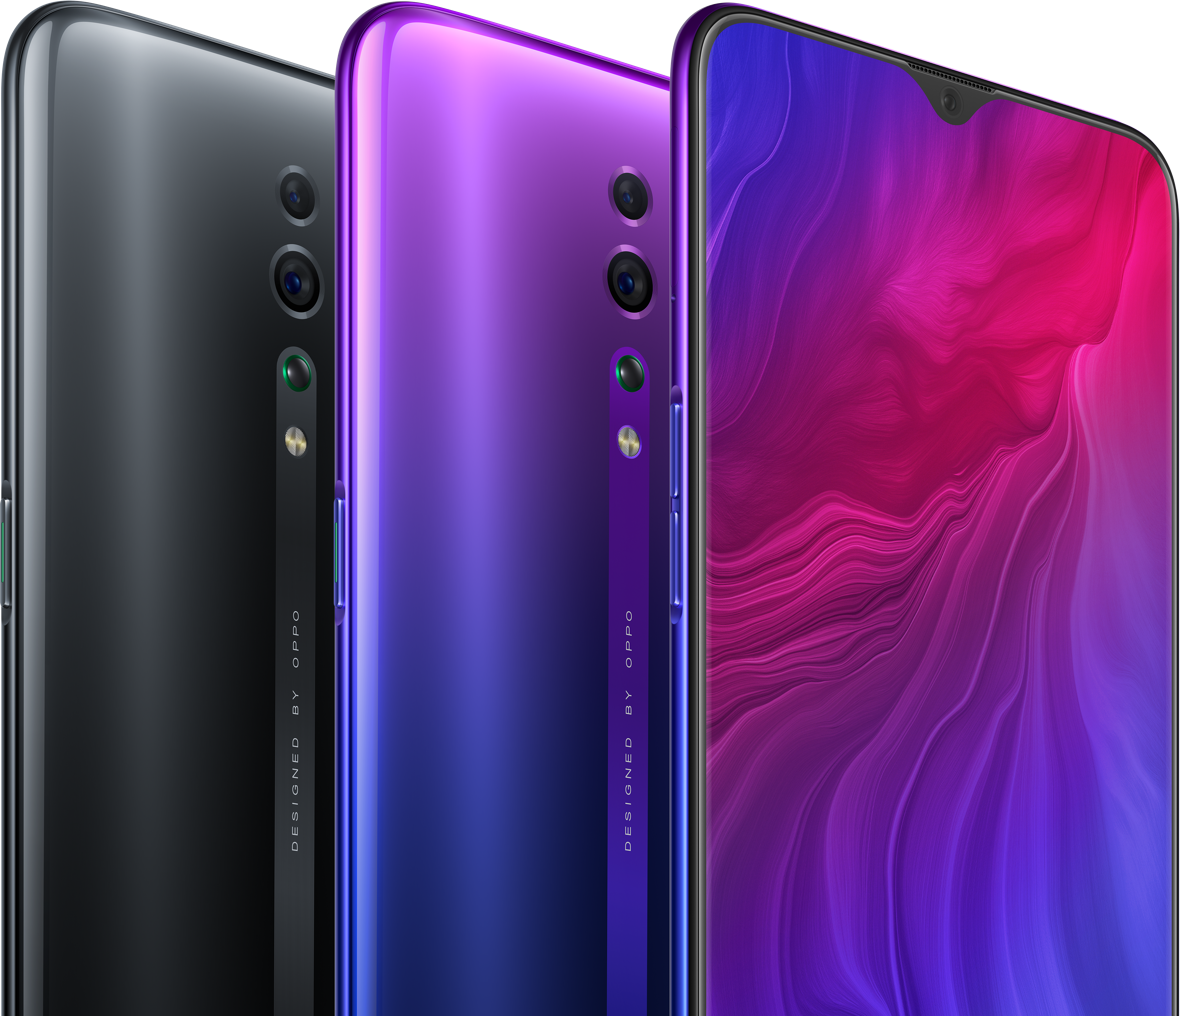 OPPO Reno Z - Further Your Vision | OPPO Australia